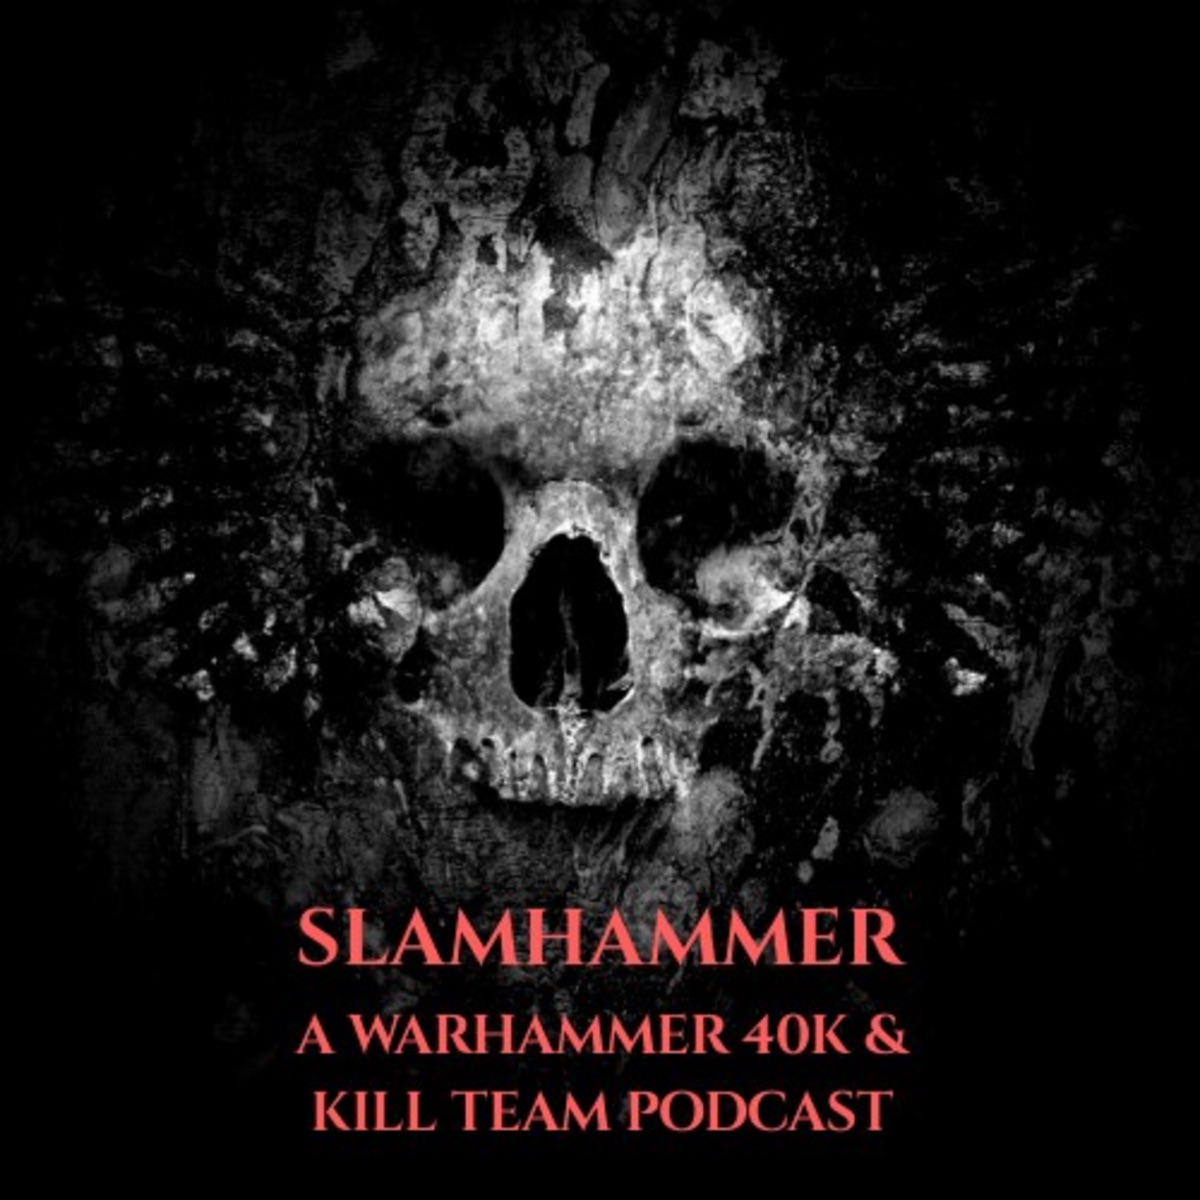 SLAMHAMMER - An Australian Warhammer 40k & Kill Team podcast